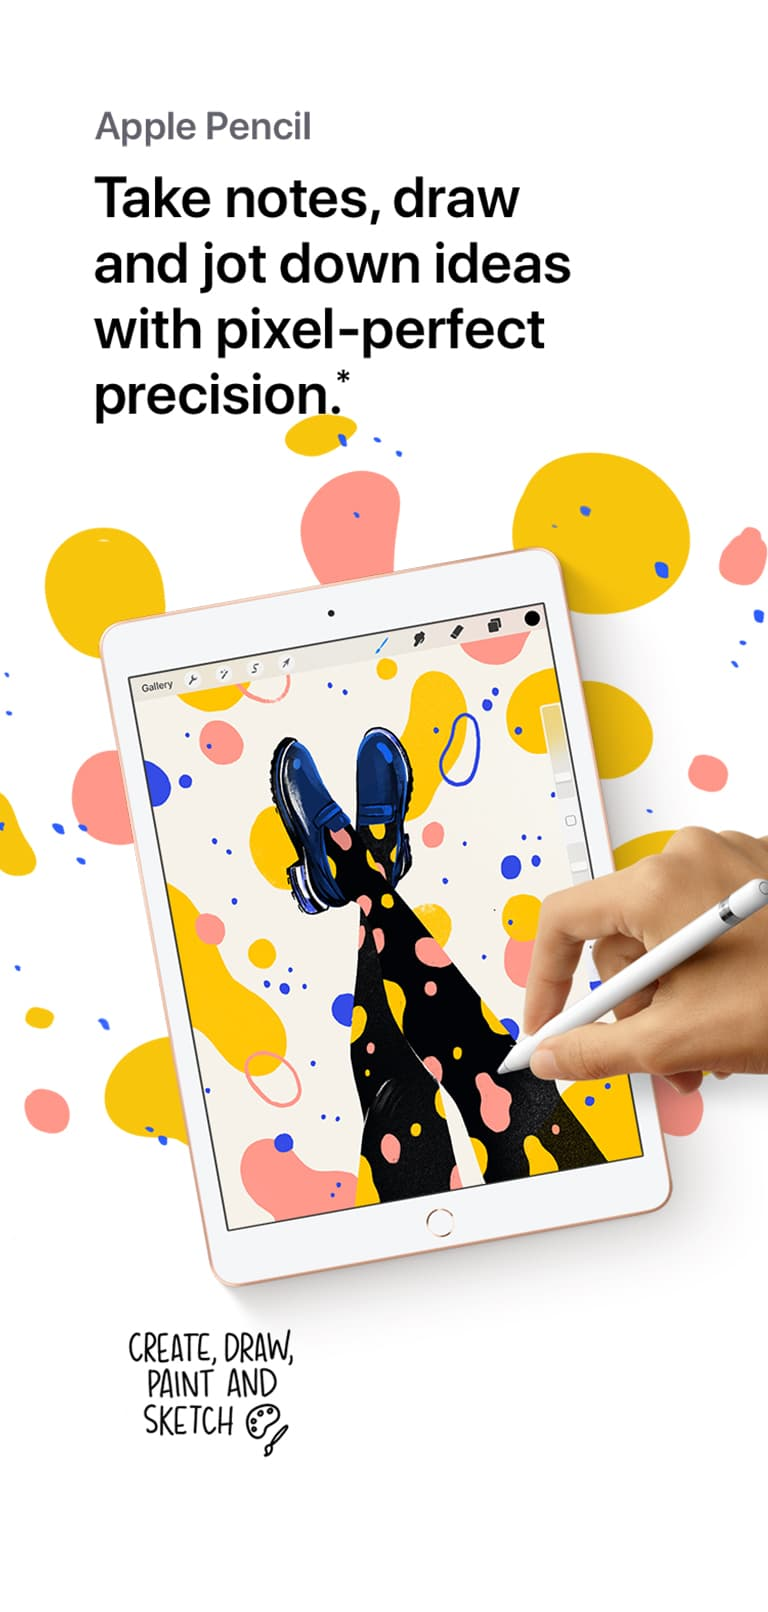 Someone drawing on the iPad screen with an Apple Pencil, beneath the words,, Take notes, draw and jot down ideas with pixel perfect precision.